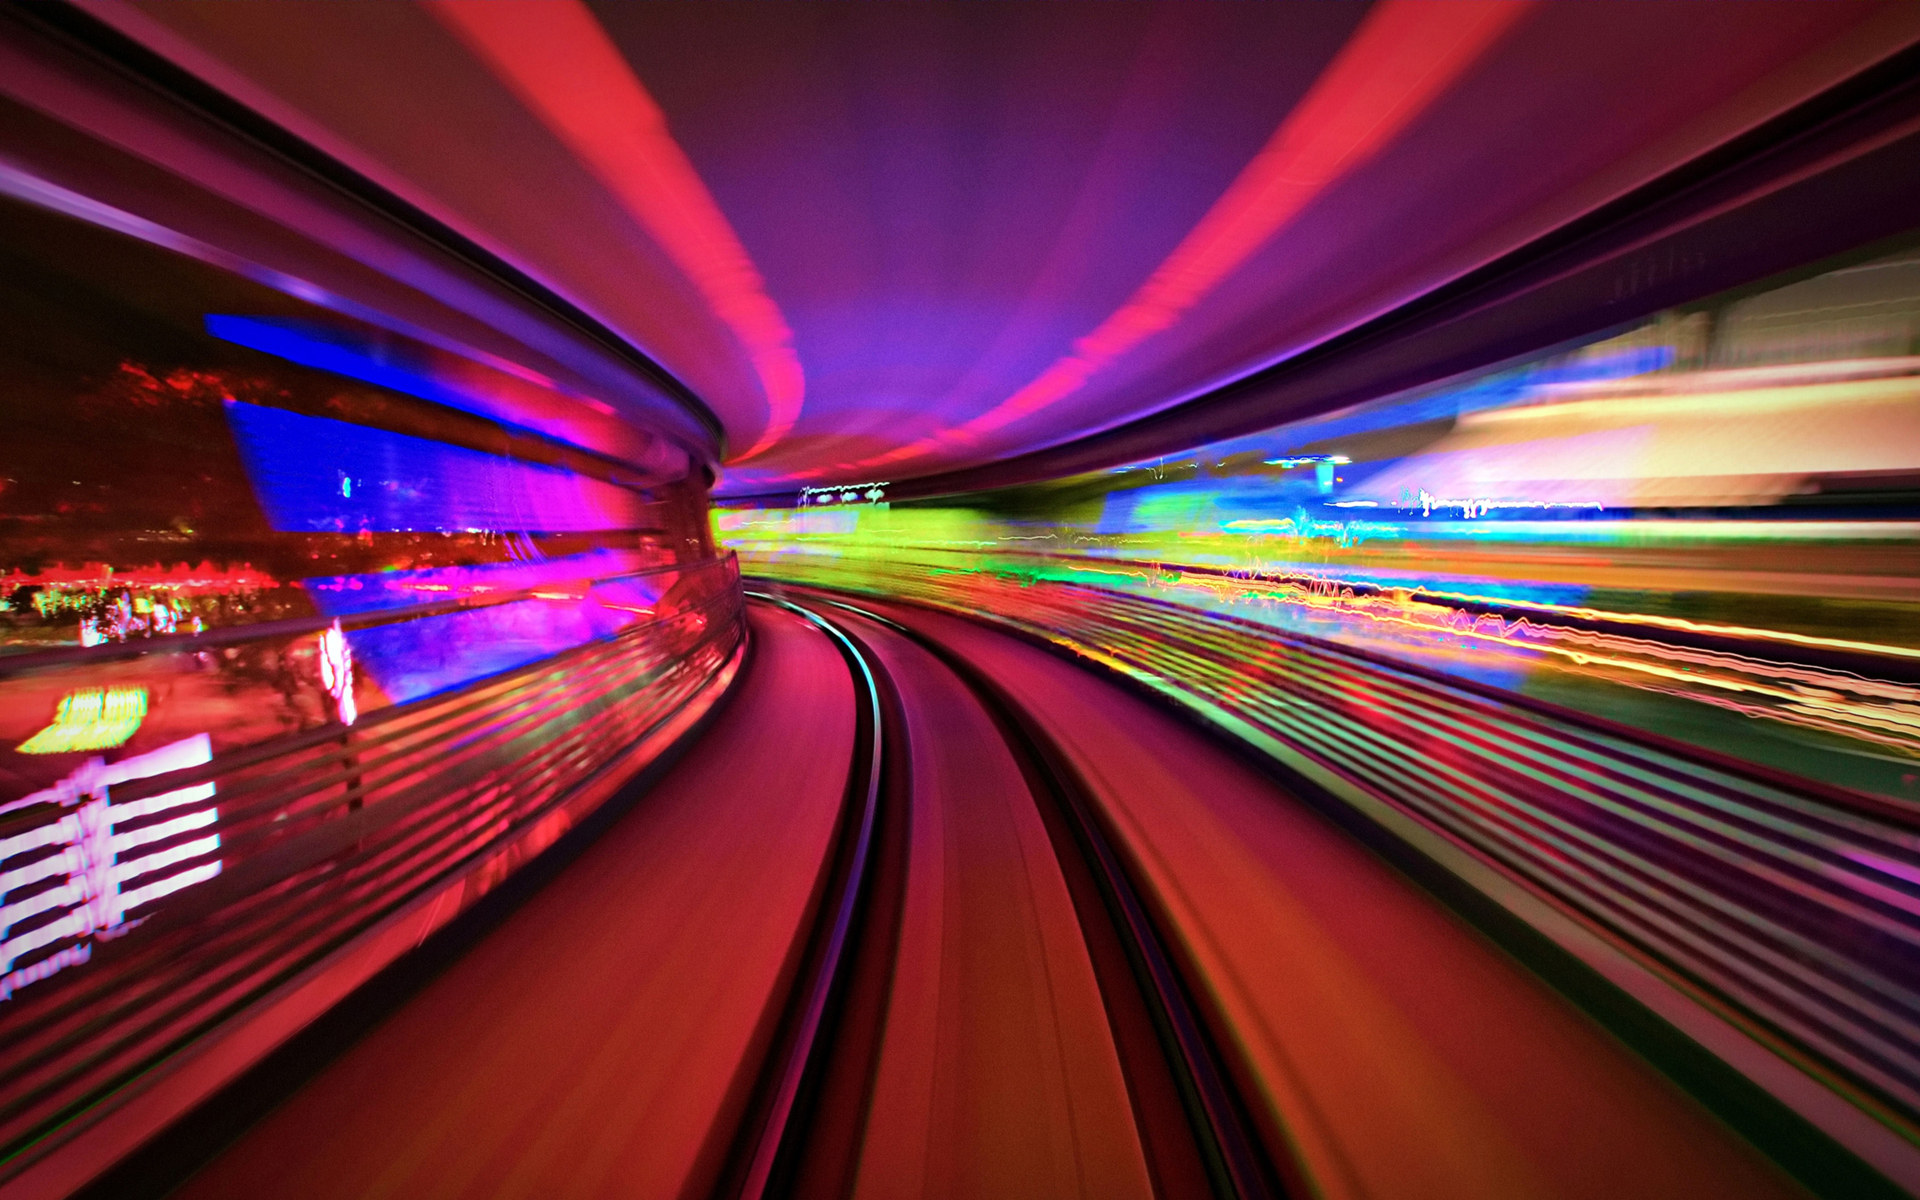 tunnel motion wallpaper 50236 1920x1200px